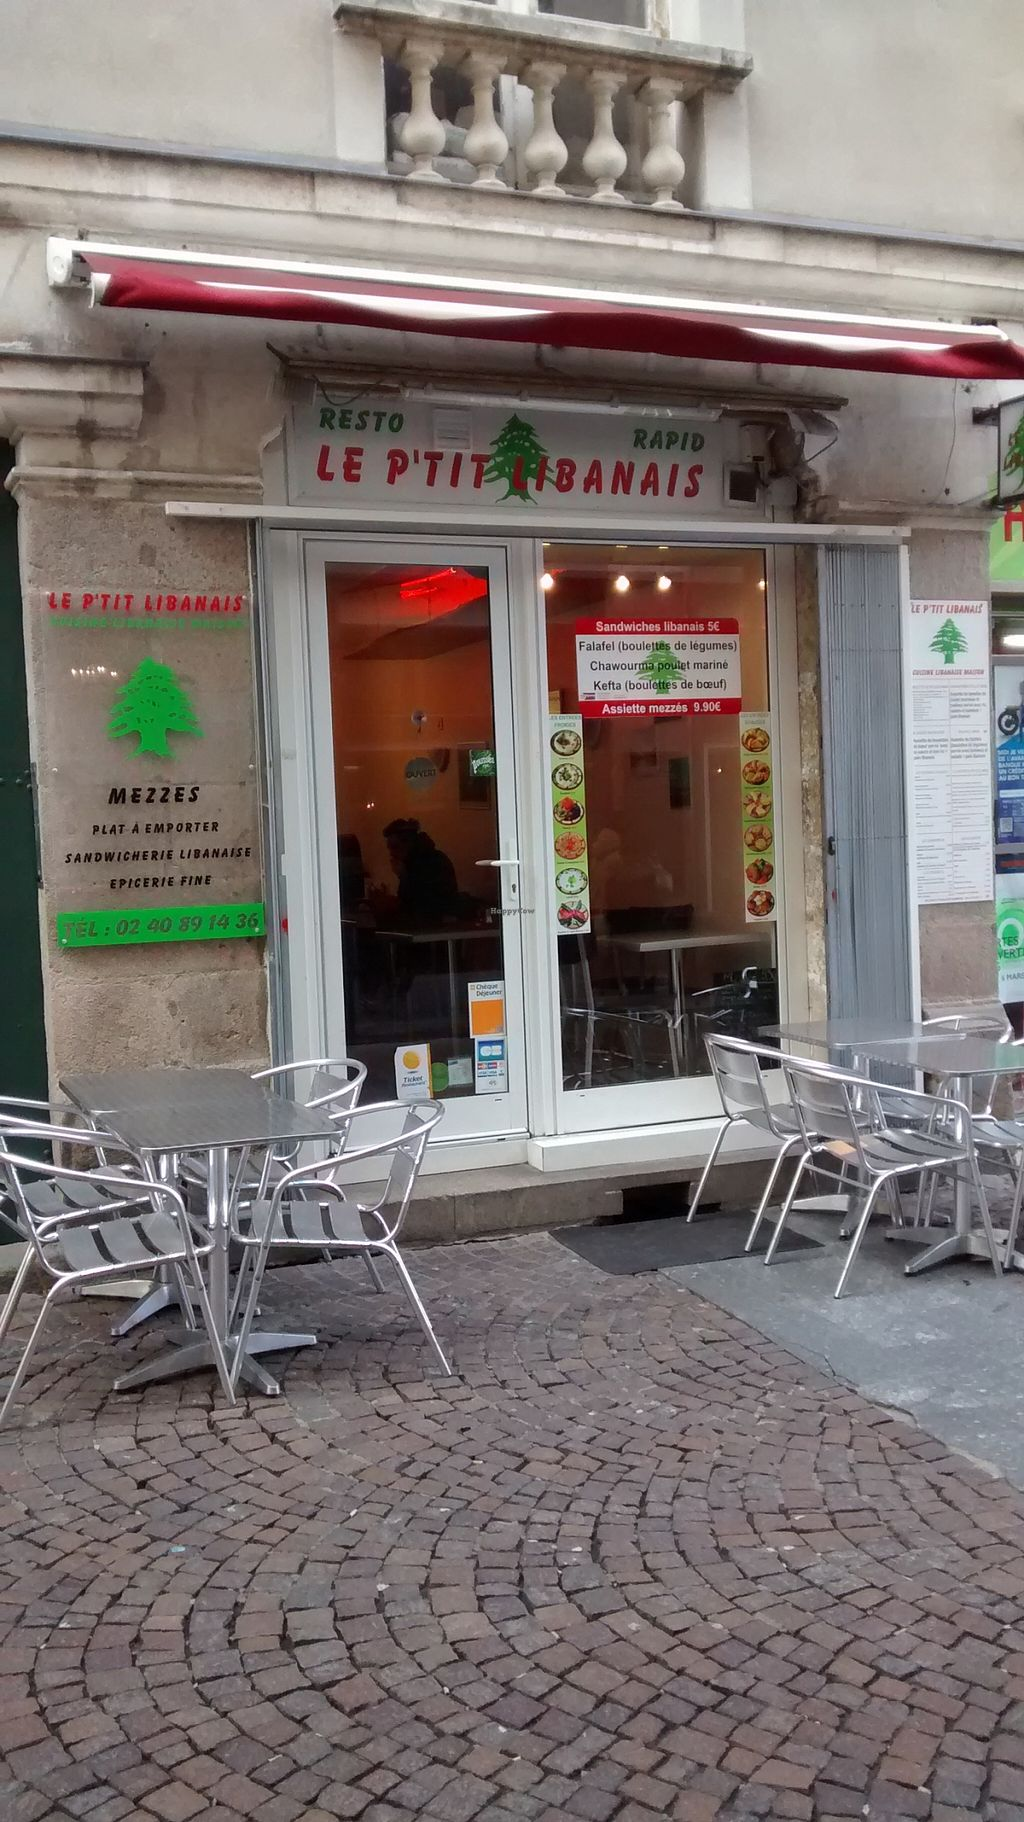 "Photo of Le P'tit Libanais  by <a href=""/members/profile/JonJon"">JonJon</a> <br/>Front wall <br/> February 26, 2016  - <a href='/contact/abuse/image/57953/137850'>Report</a>"